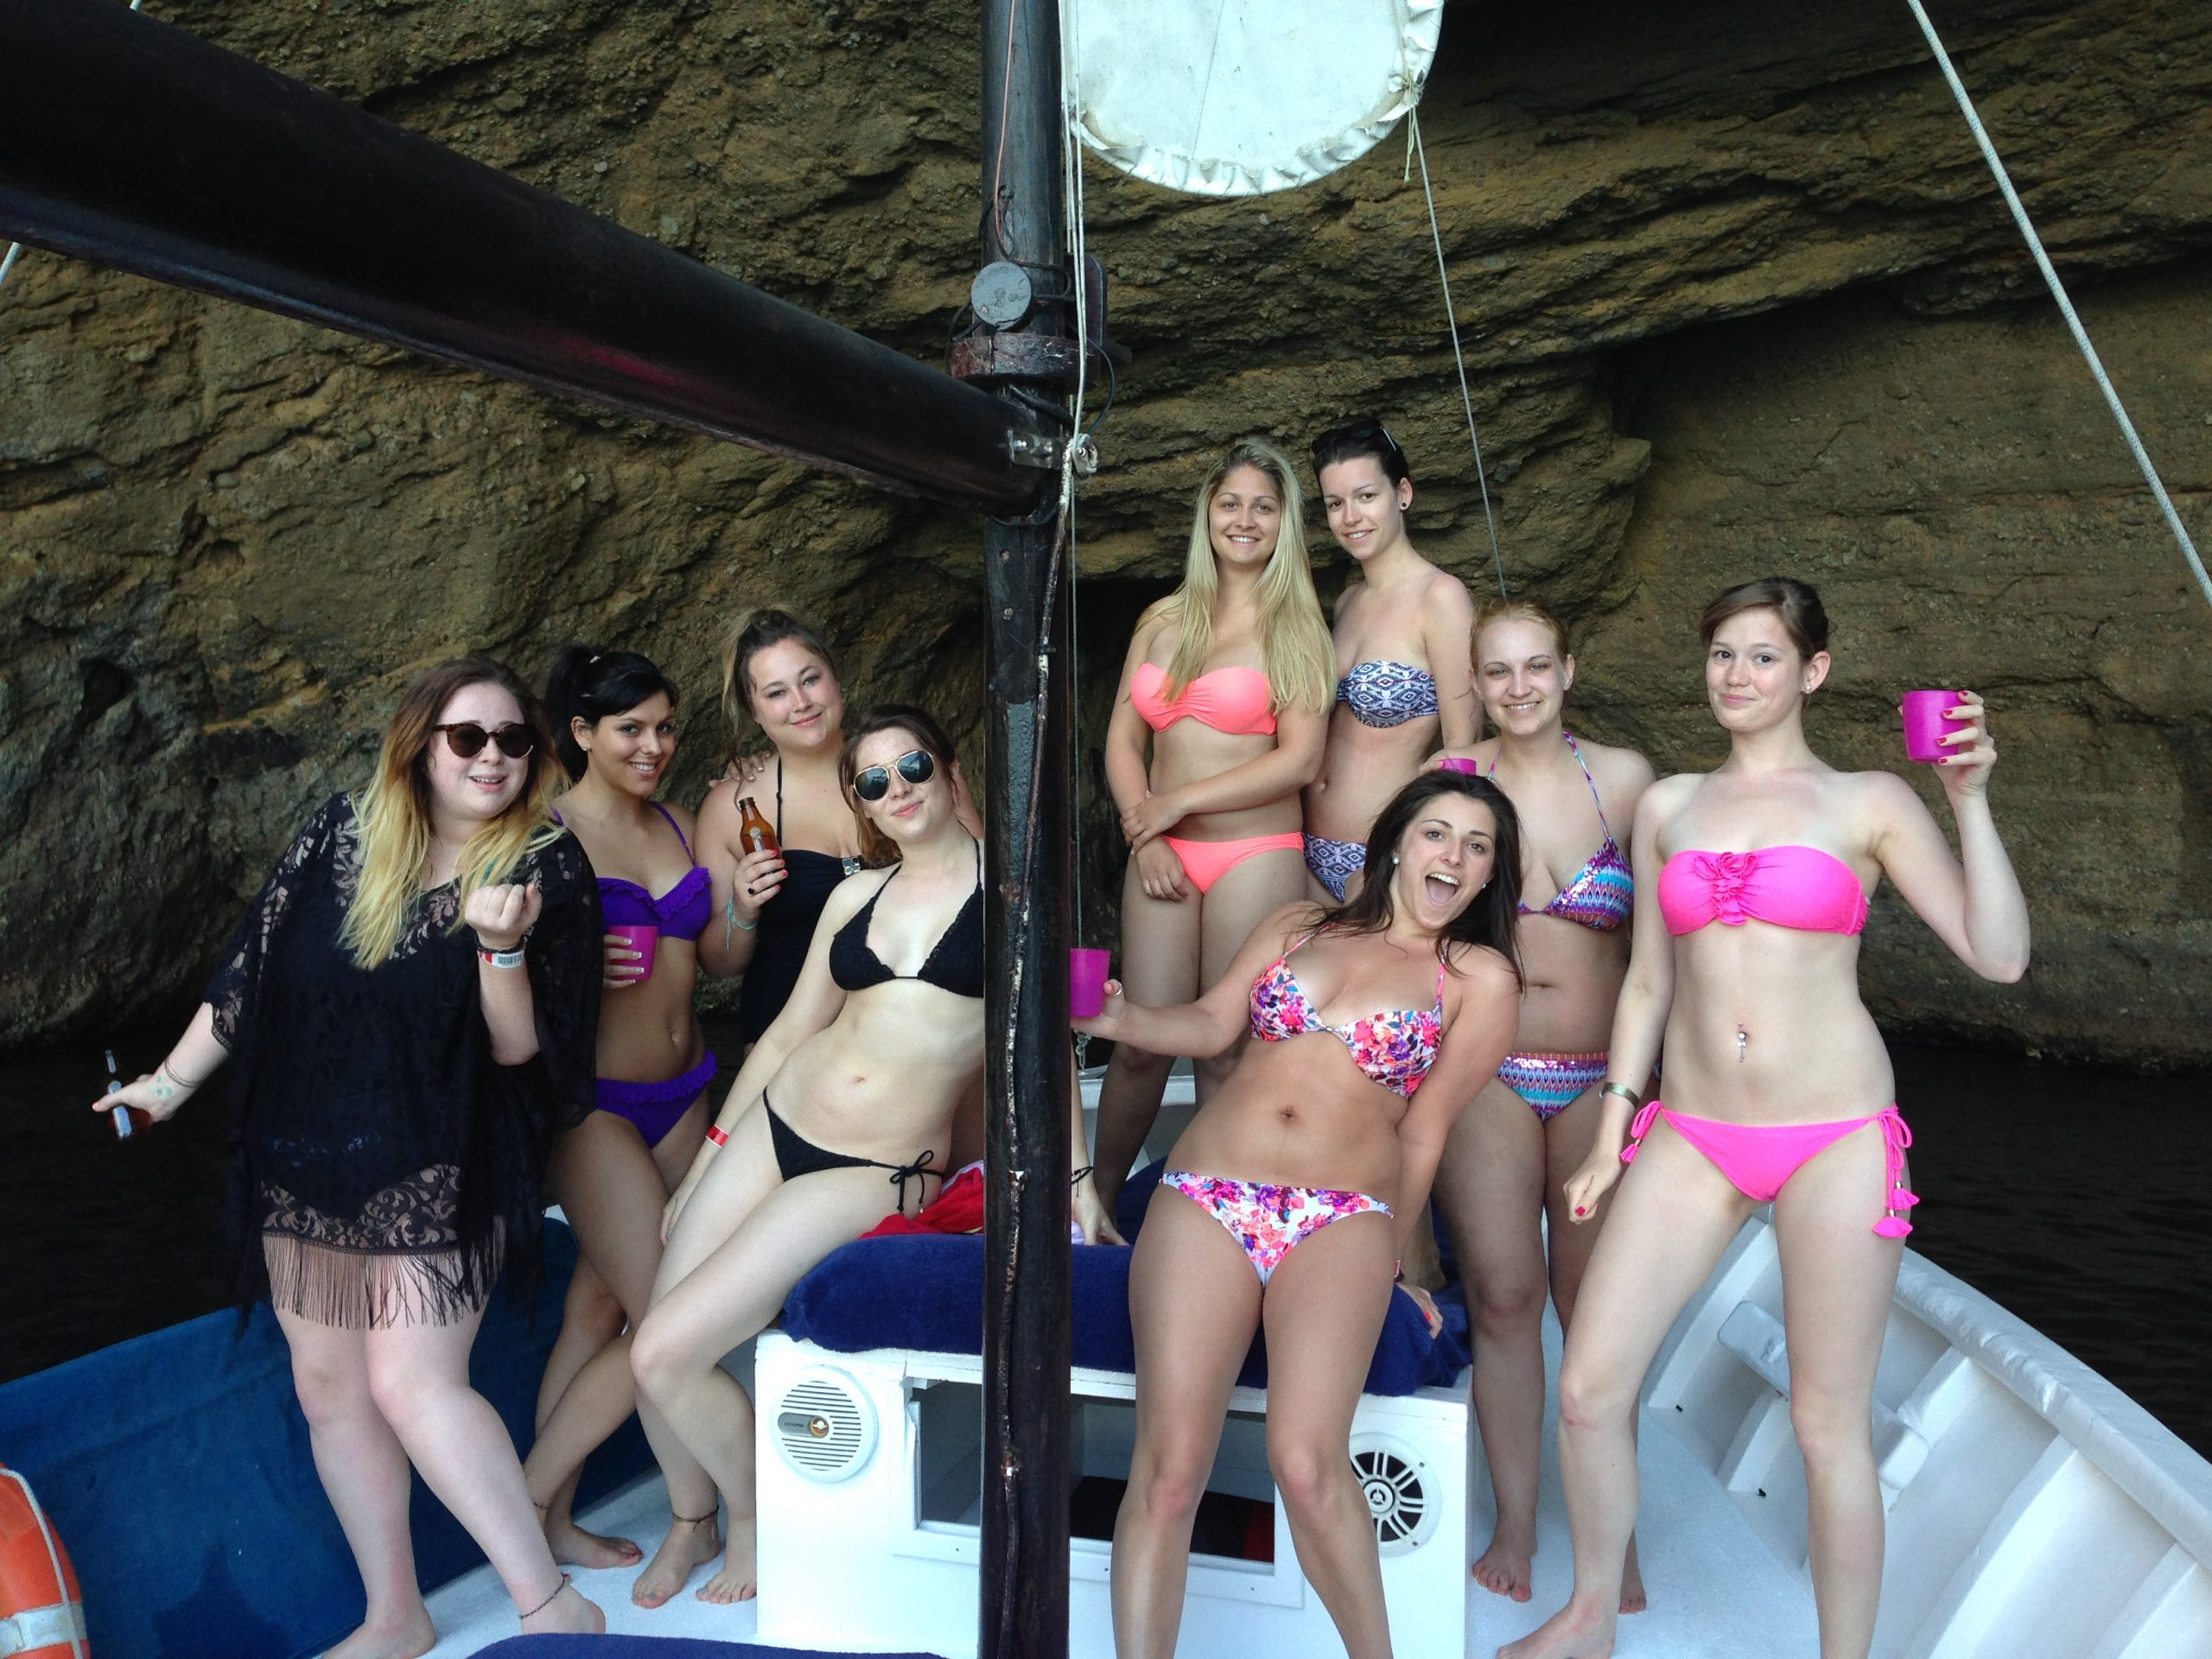 Loving life on Chilli Pepper Charters meeting new Ibiza lover